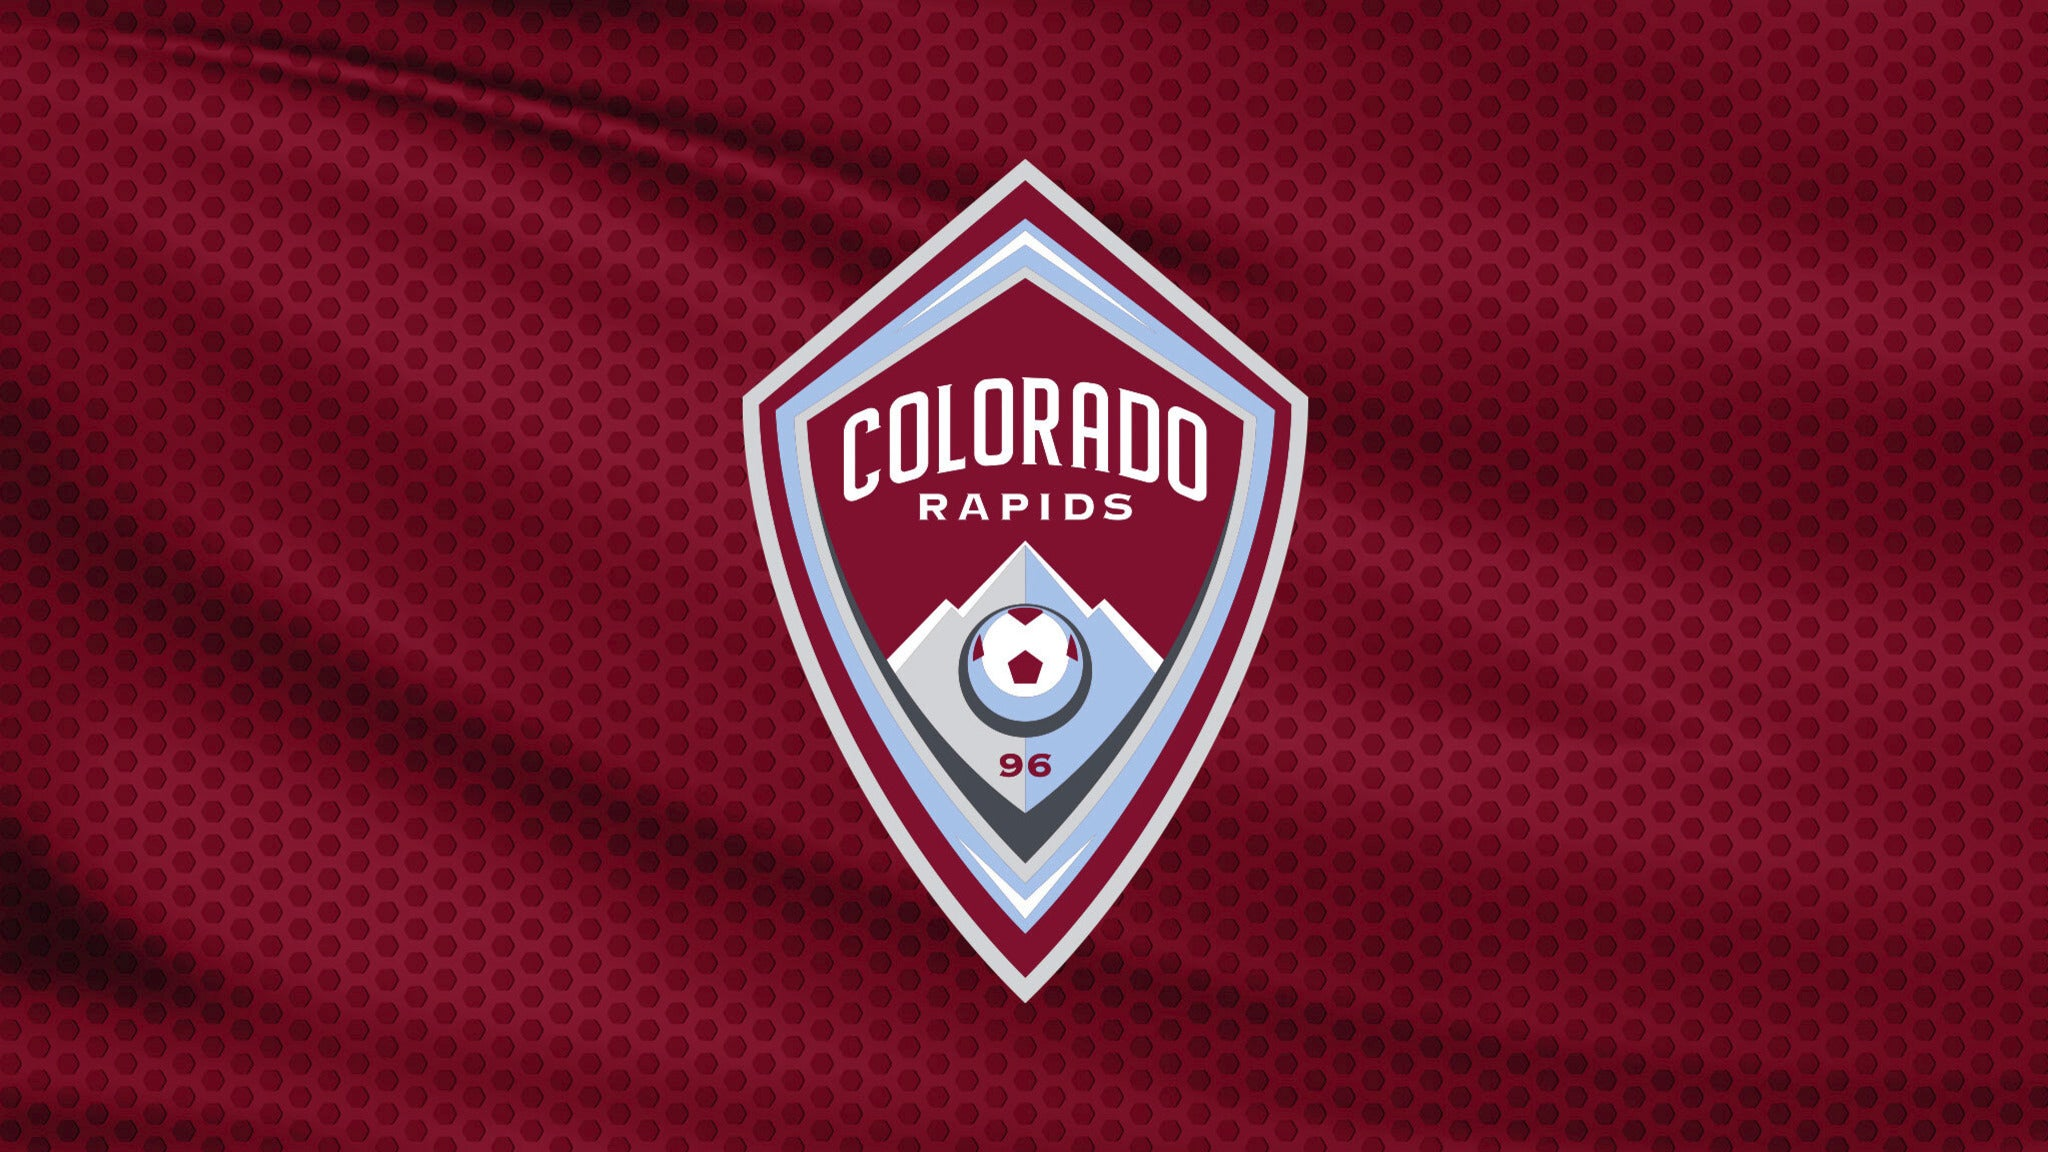 Colorado Rapids vs. Real Salt Lake